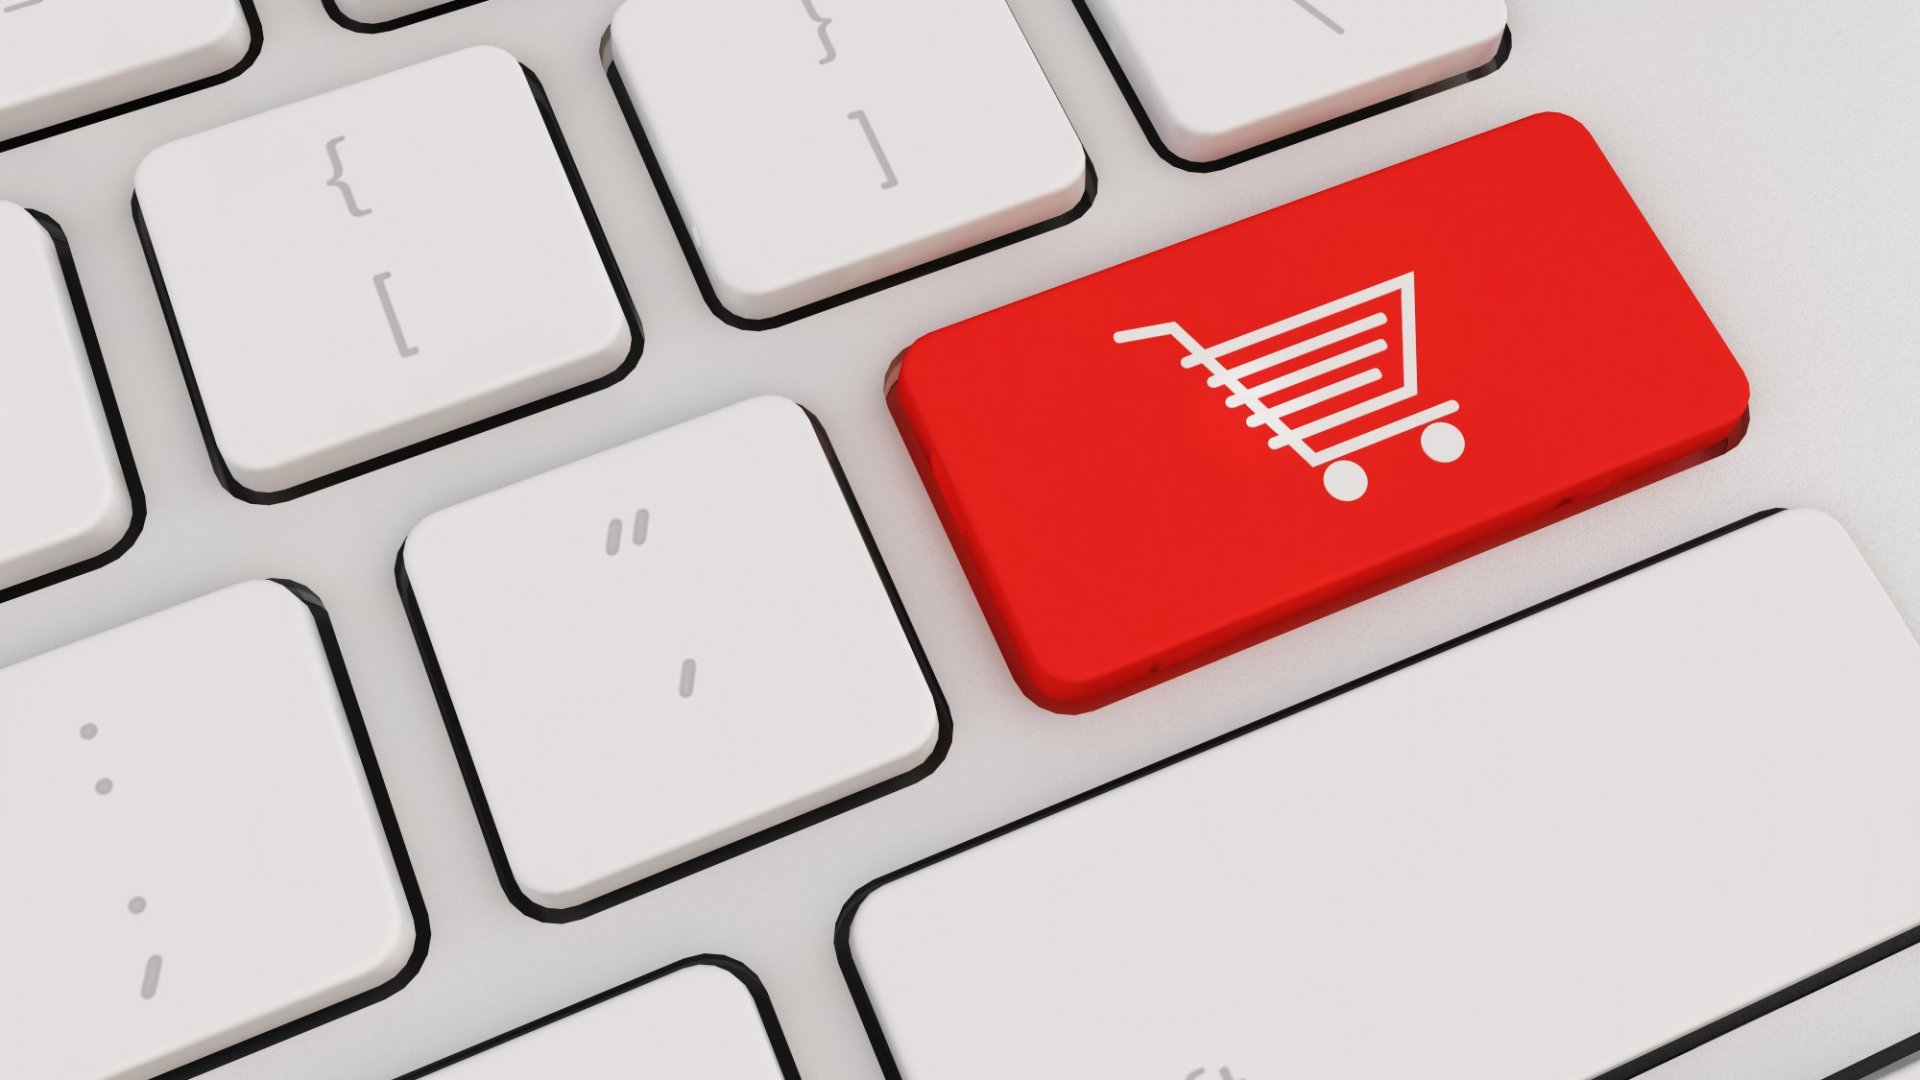 E-commerce sales are expected to exceed $4 billion by 2020.